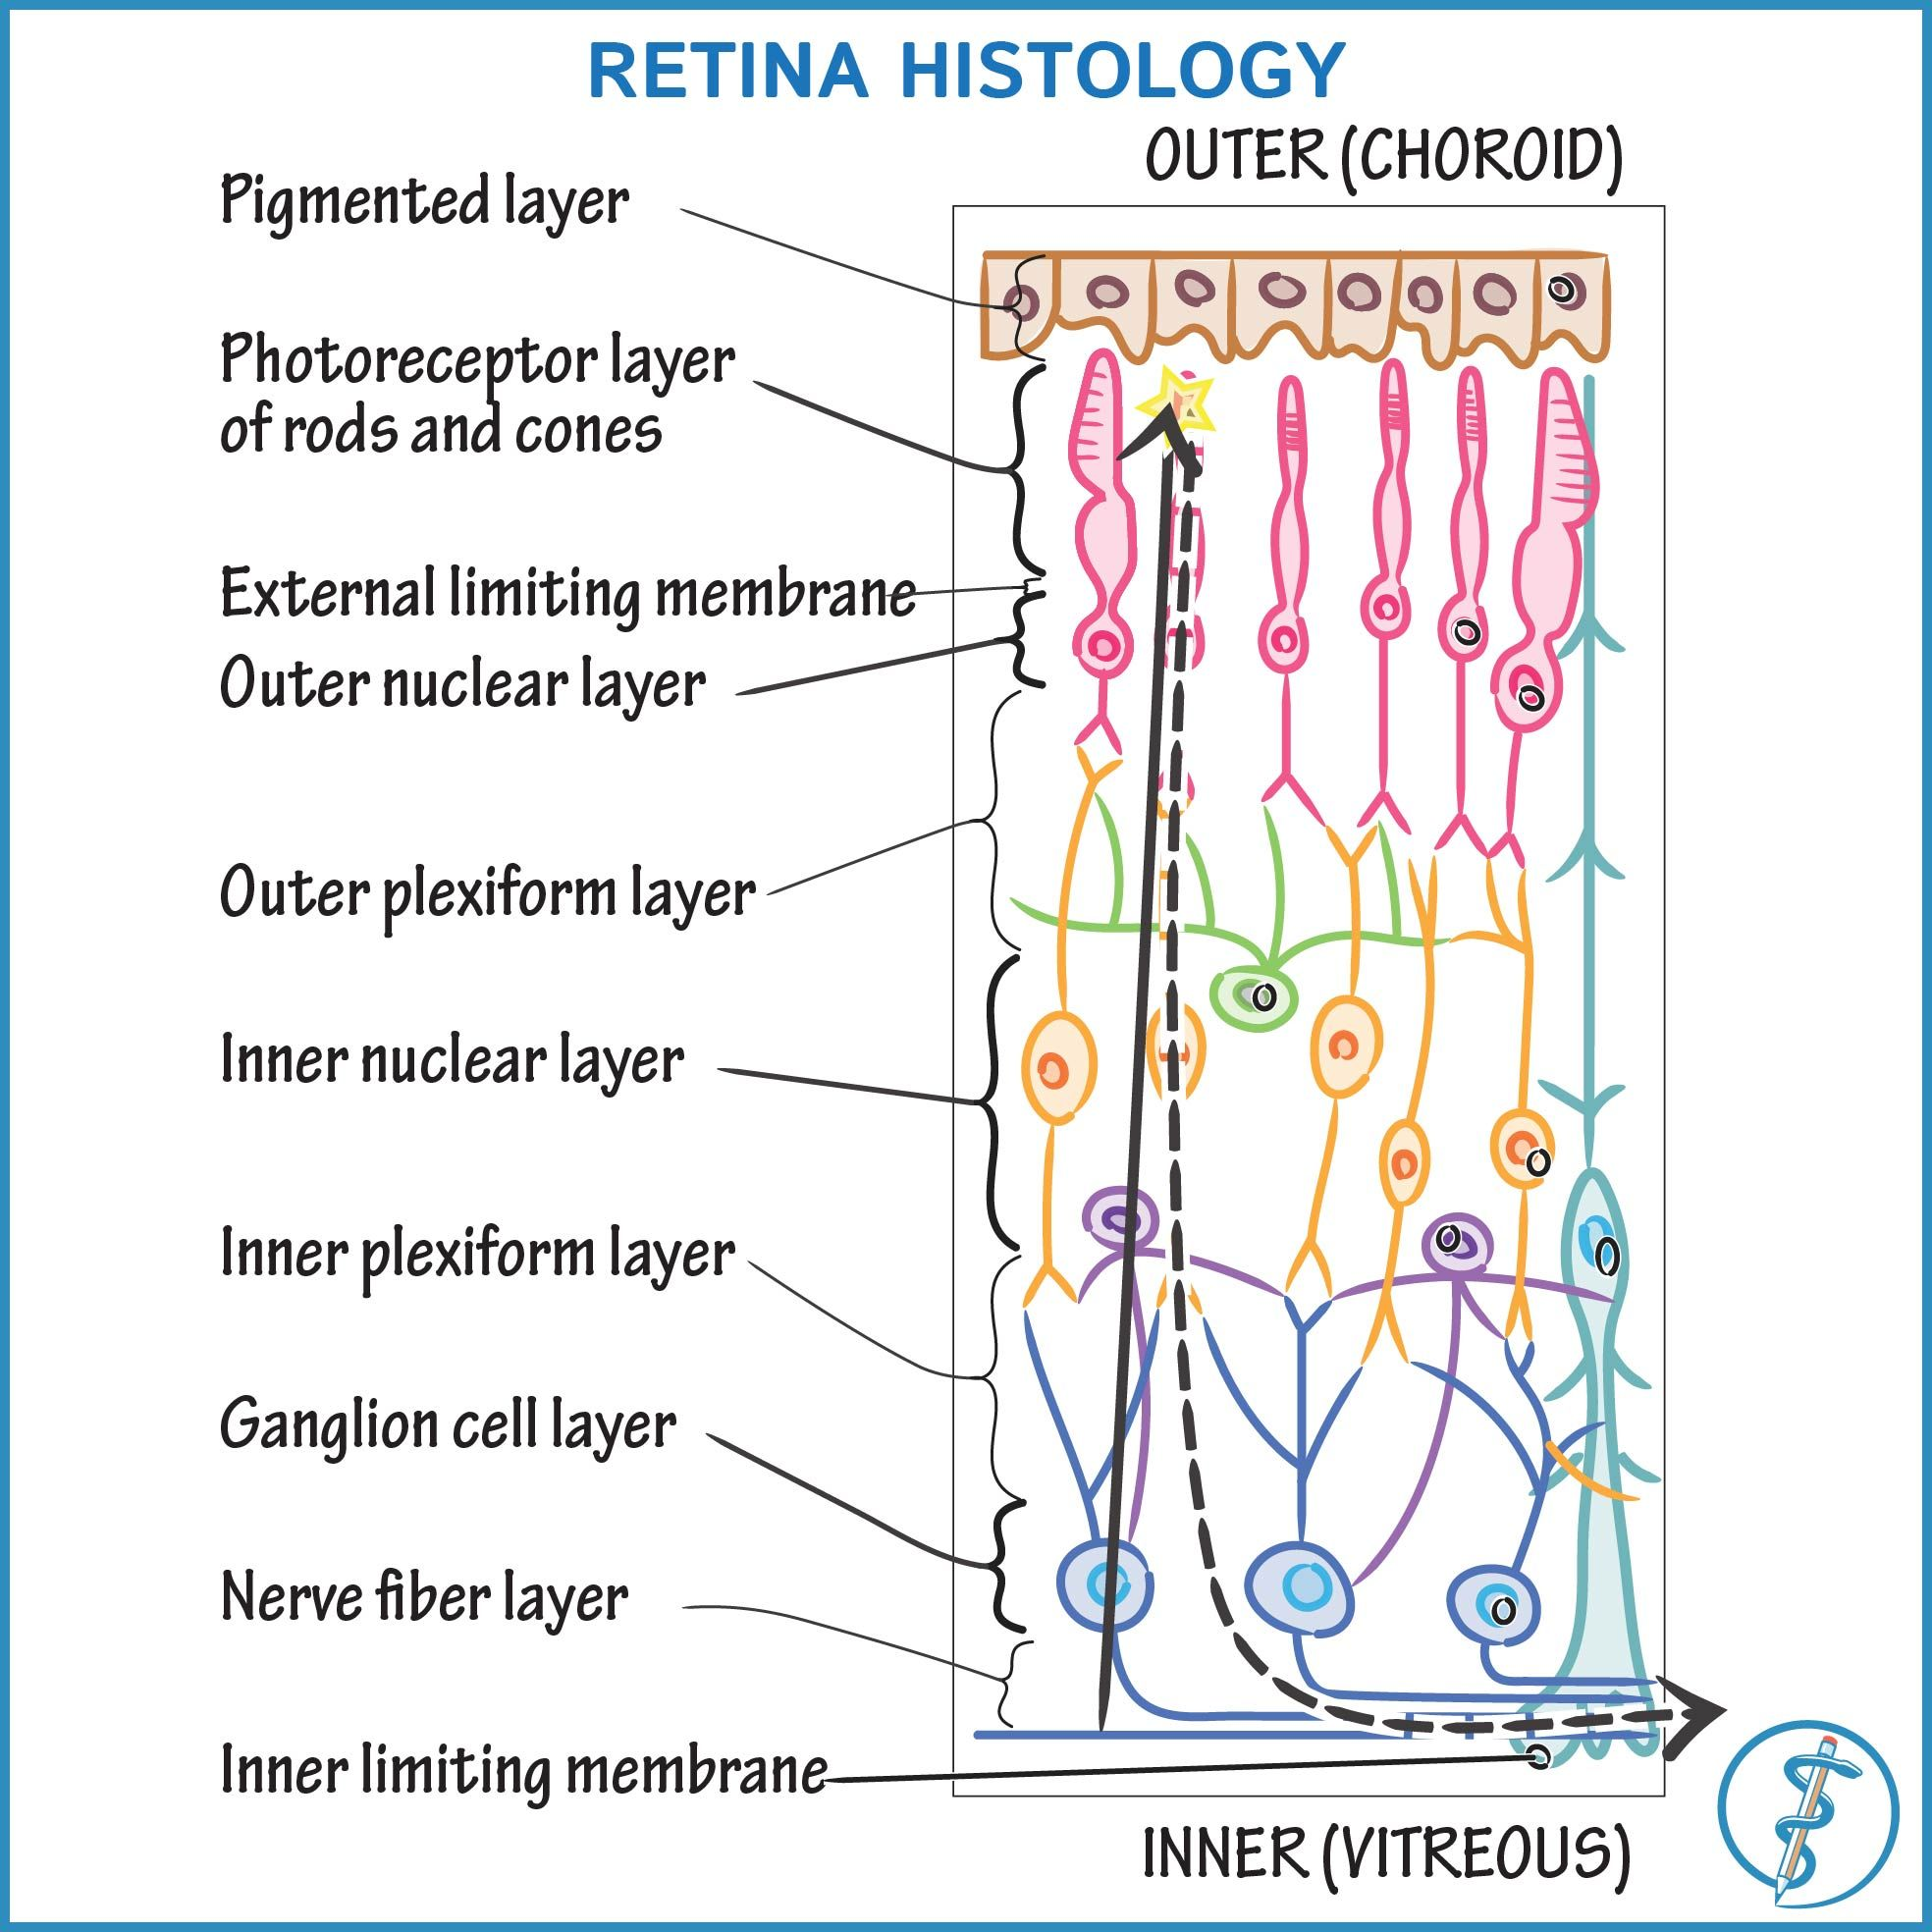 For More On Retina Histology And To See How This Diagram